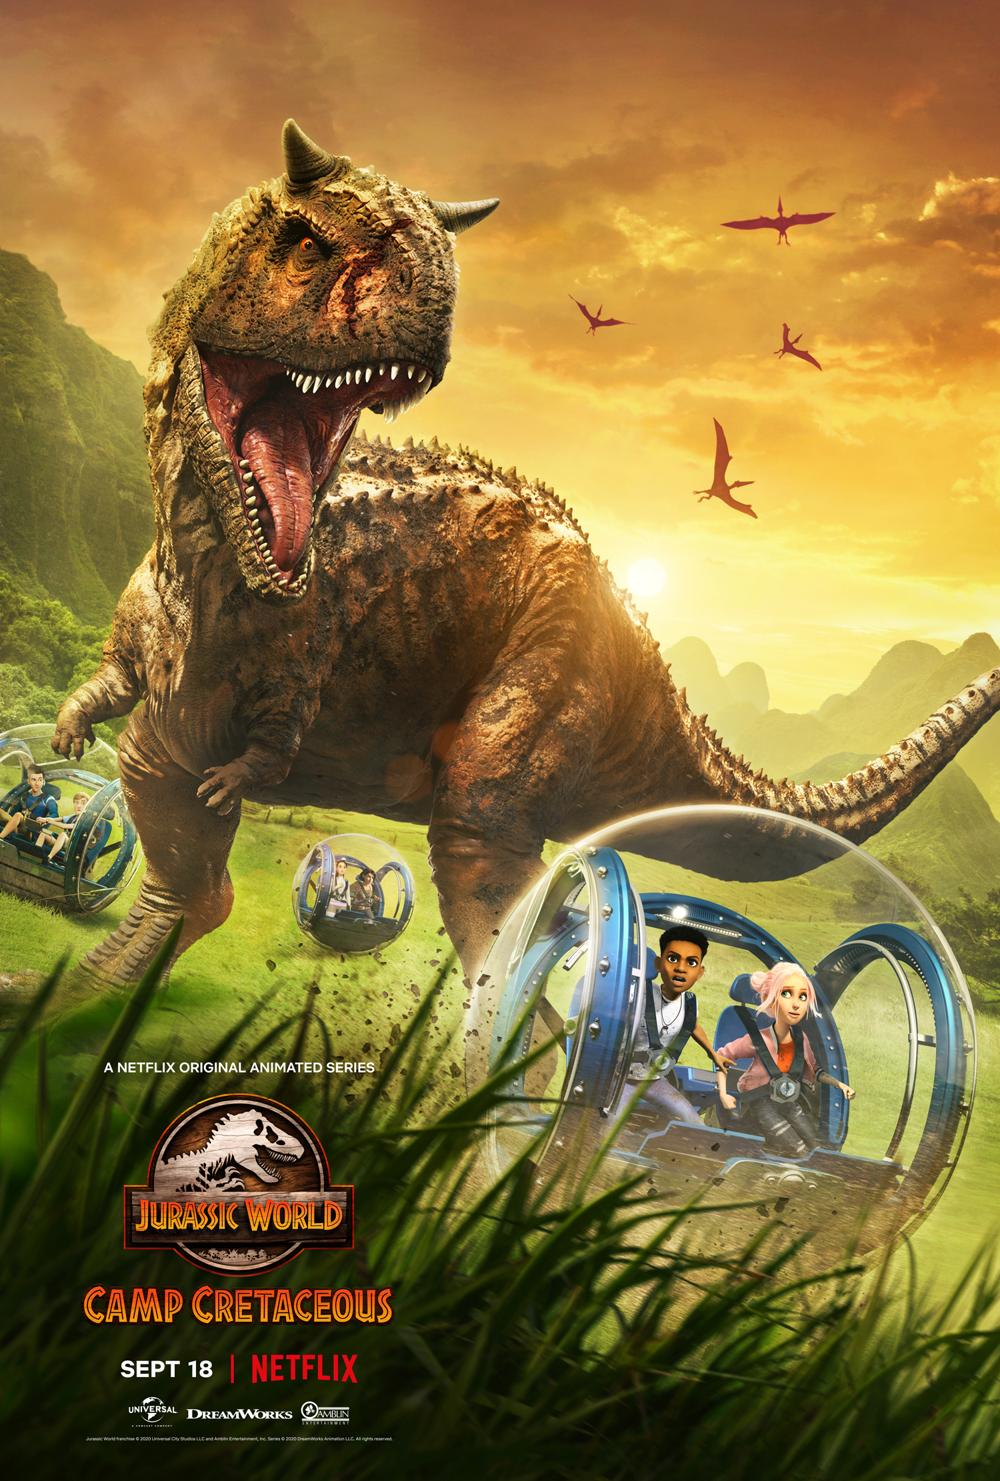 Jurassic World: Camp Cretaceous